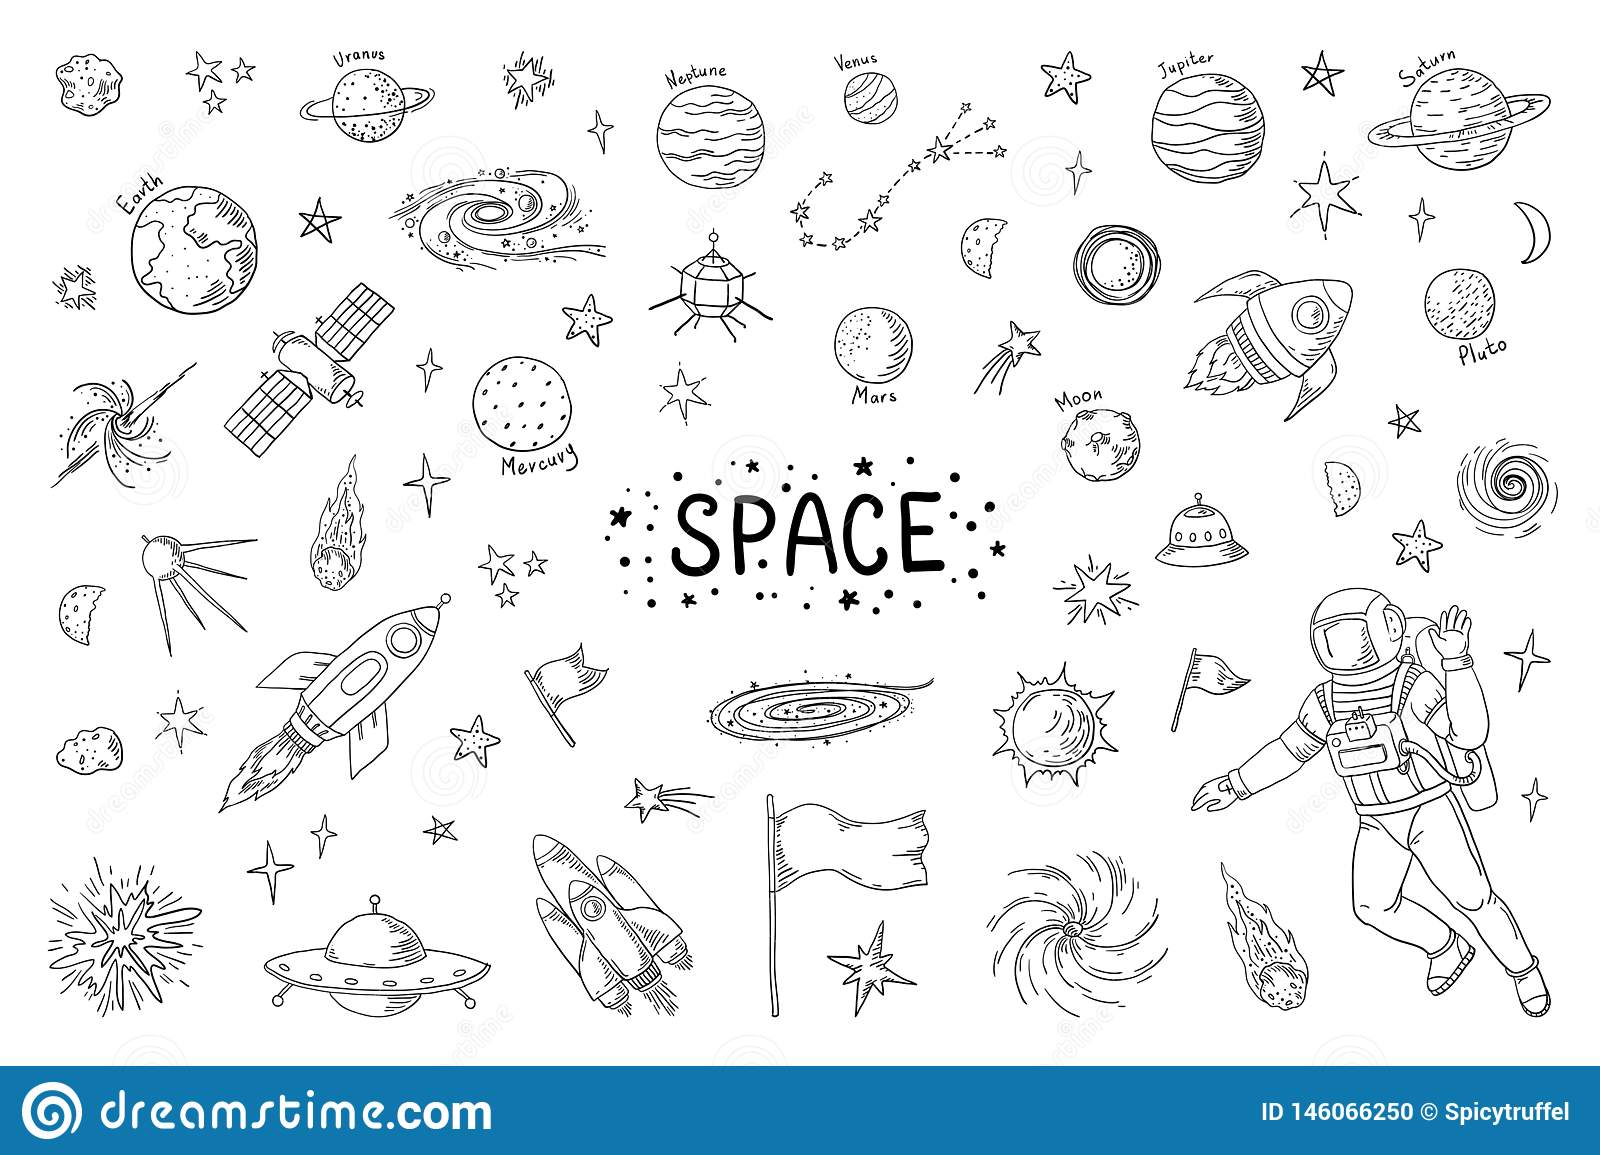 Doodle space trendy universe pattern star astronaut meteor rocket comet astronomy elements vector cosmic pencil sketch elements drawing